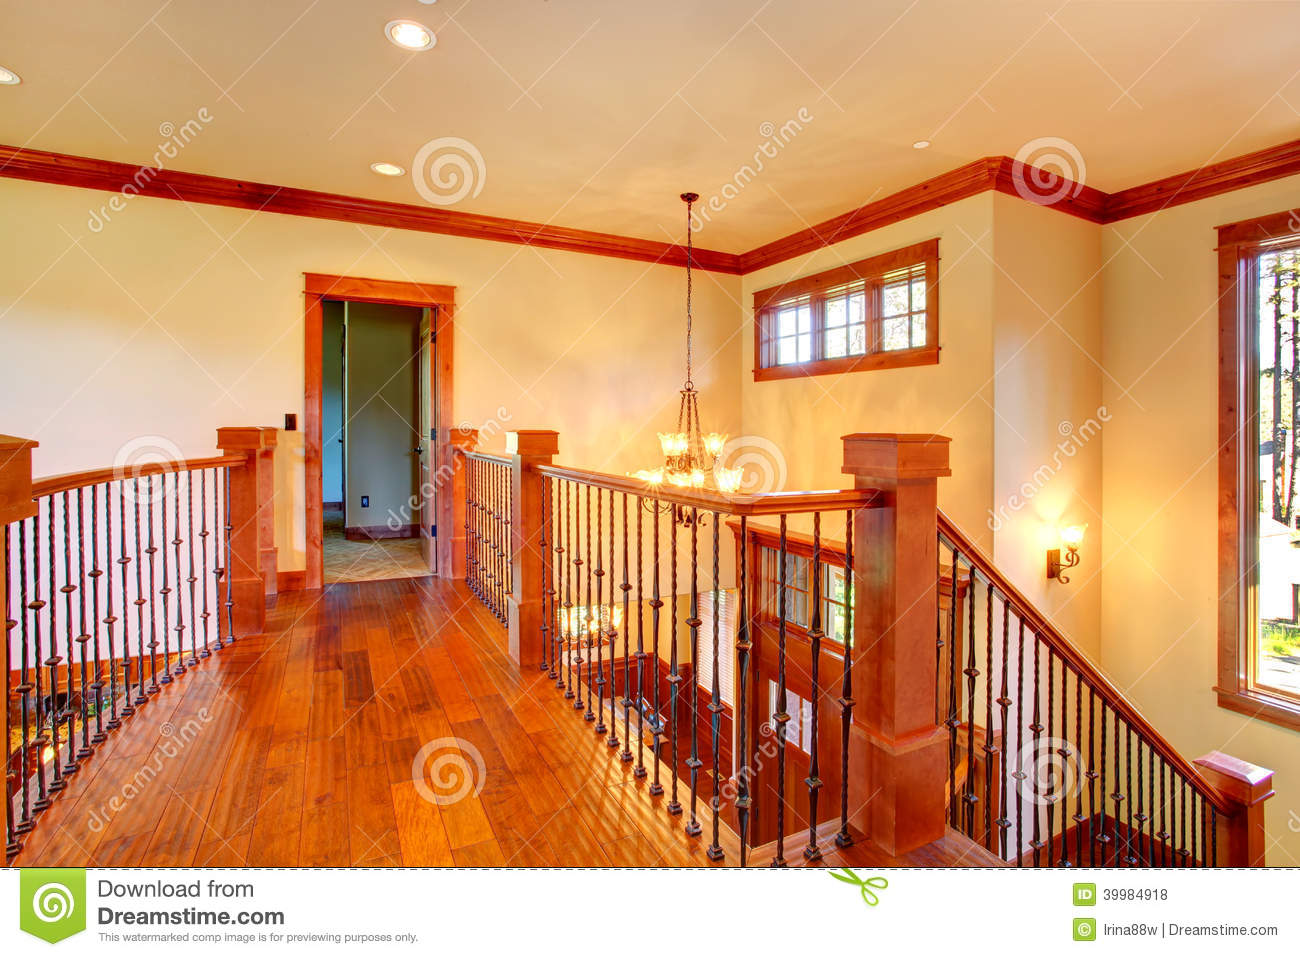 Royalty Free Stock Photos Lof Balcony Luxury House Interior Beautiful Loft View Wood Iron Railings Hardwood Floor Image39984918 on Two Story House Plans With Balconies